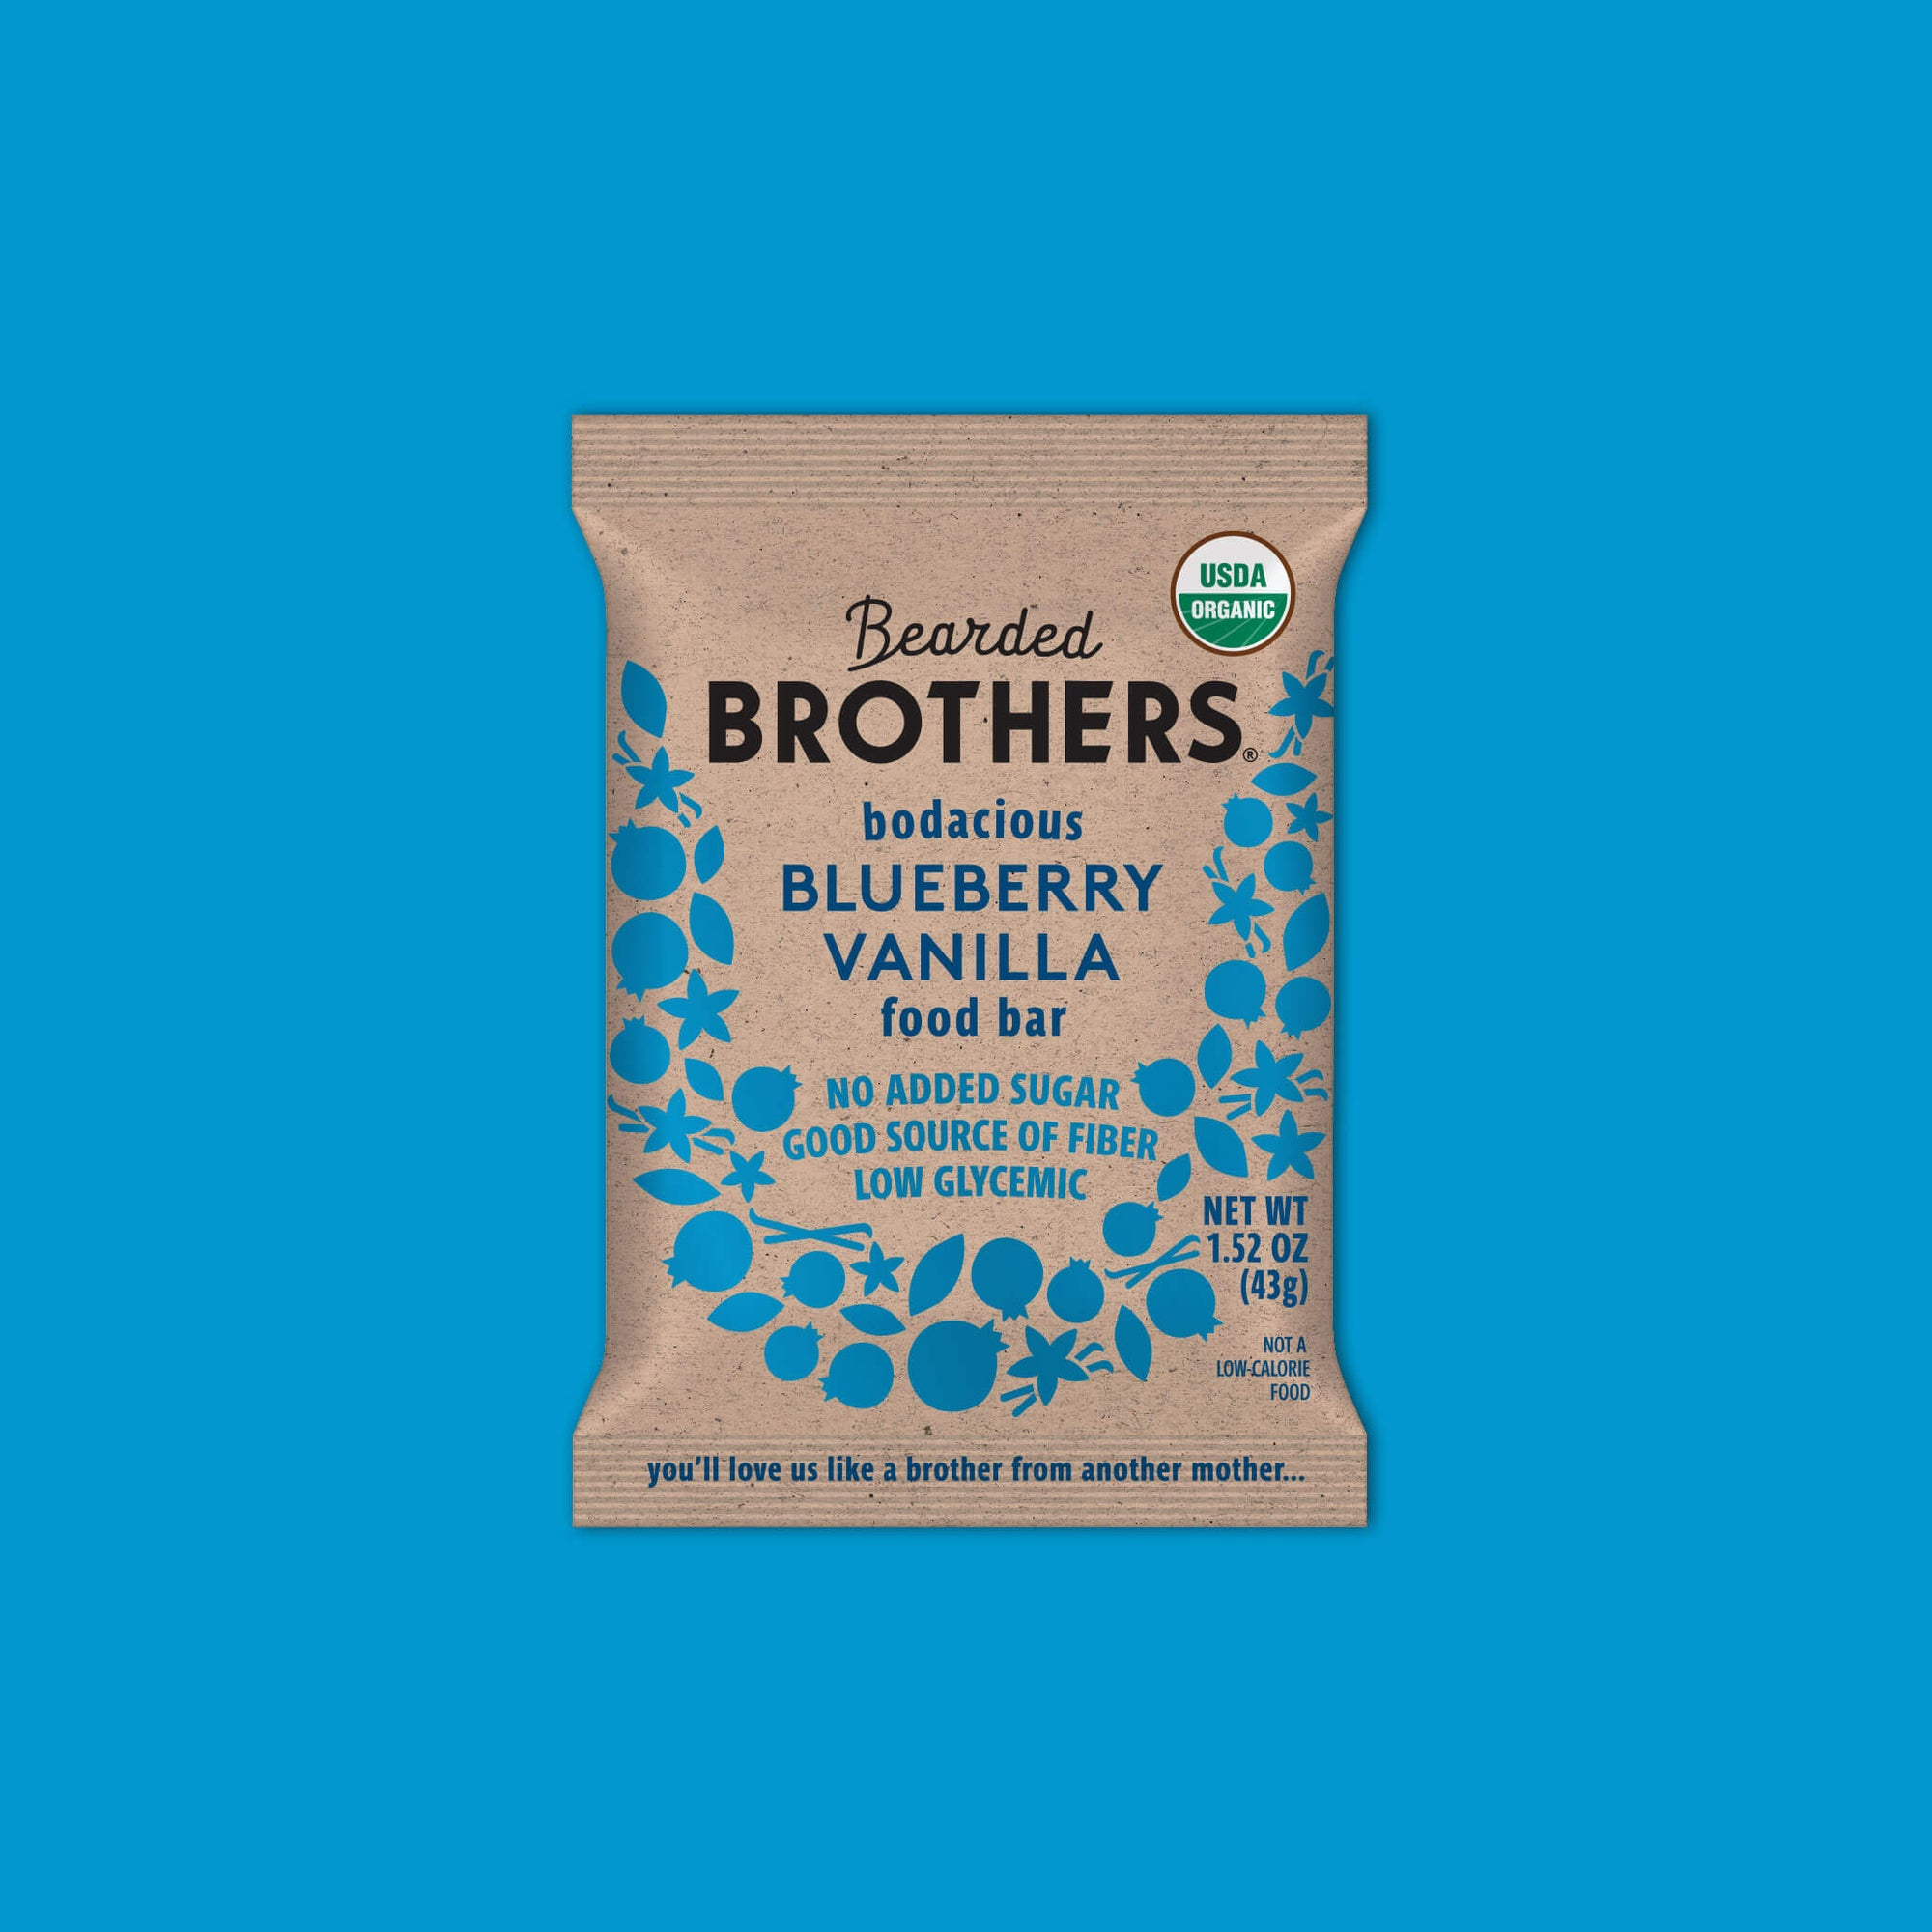 Bodacious Blueberry Vanilla - Bearded Brothers